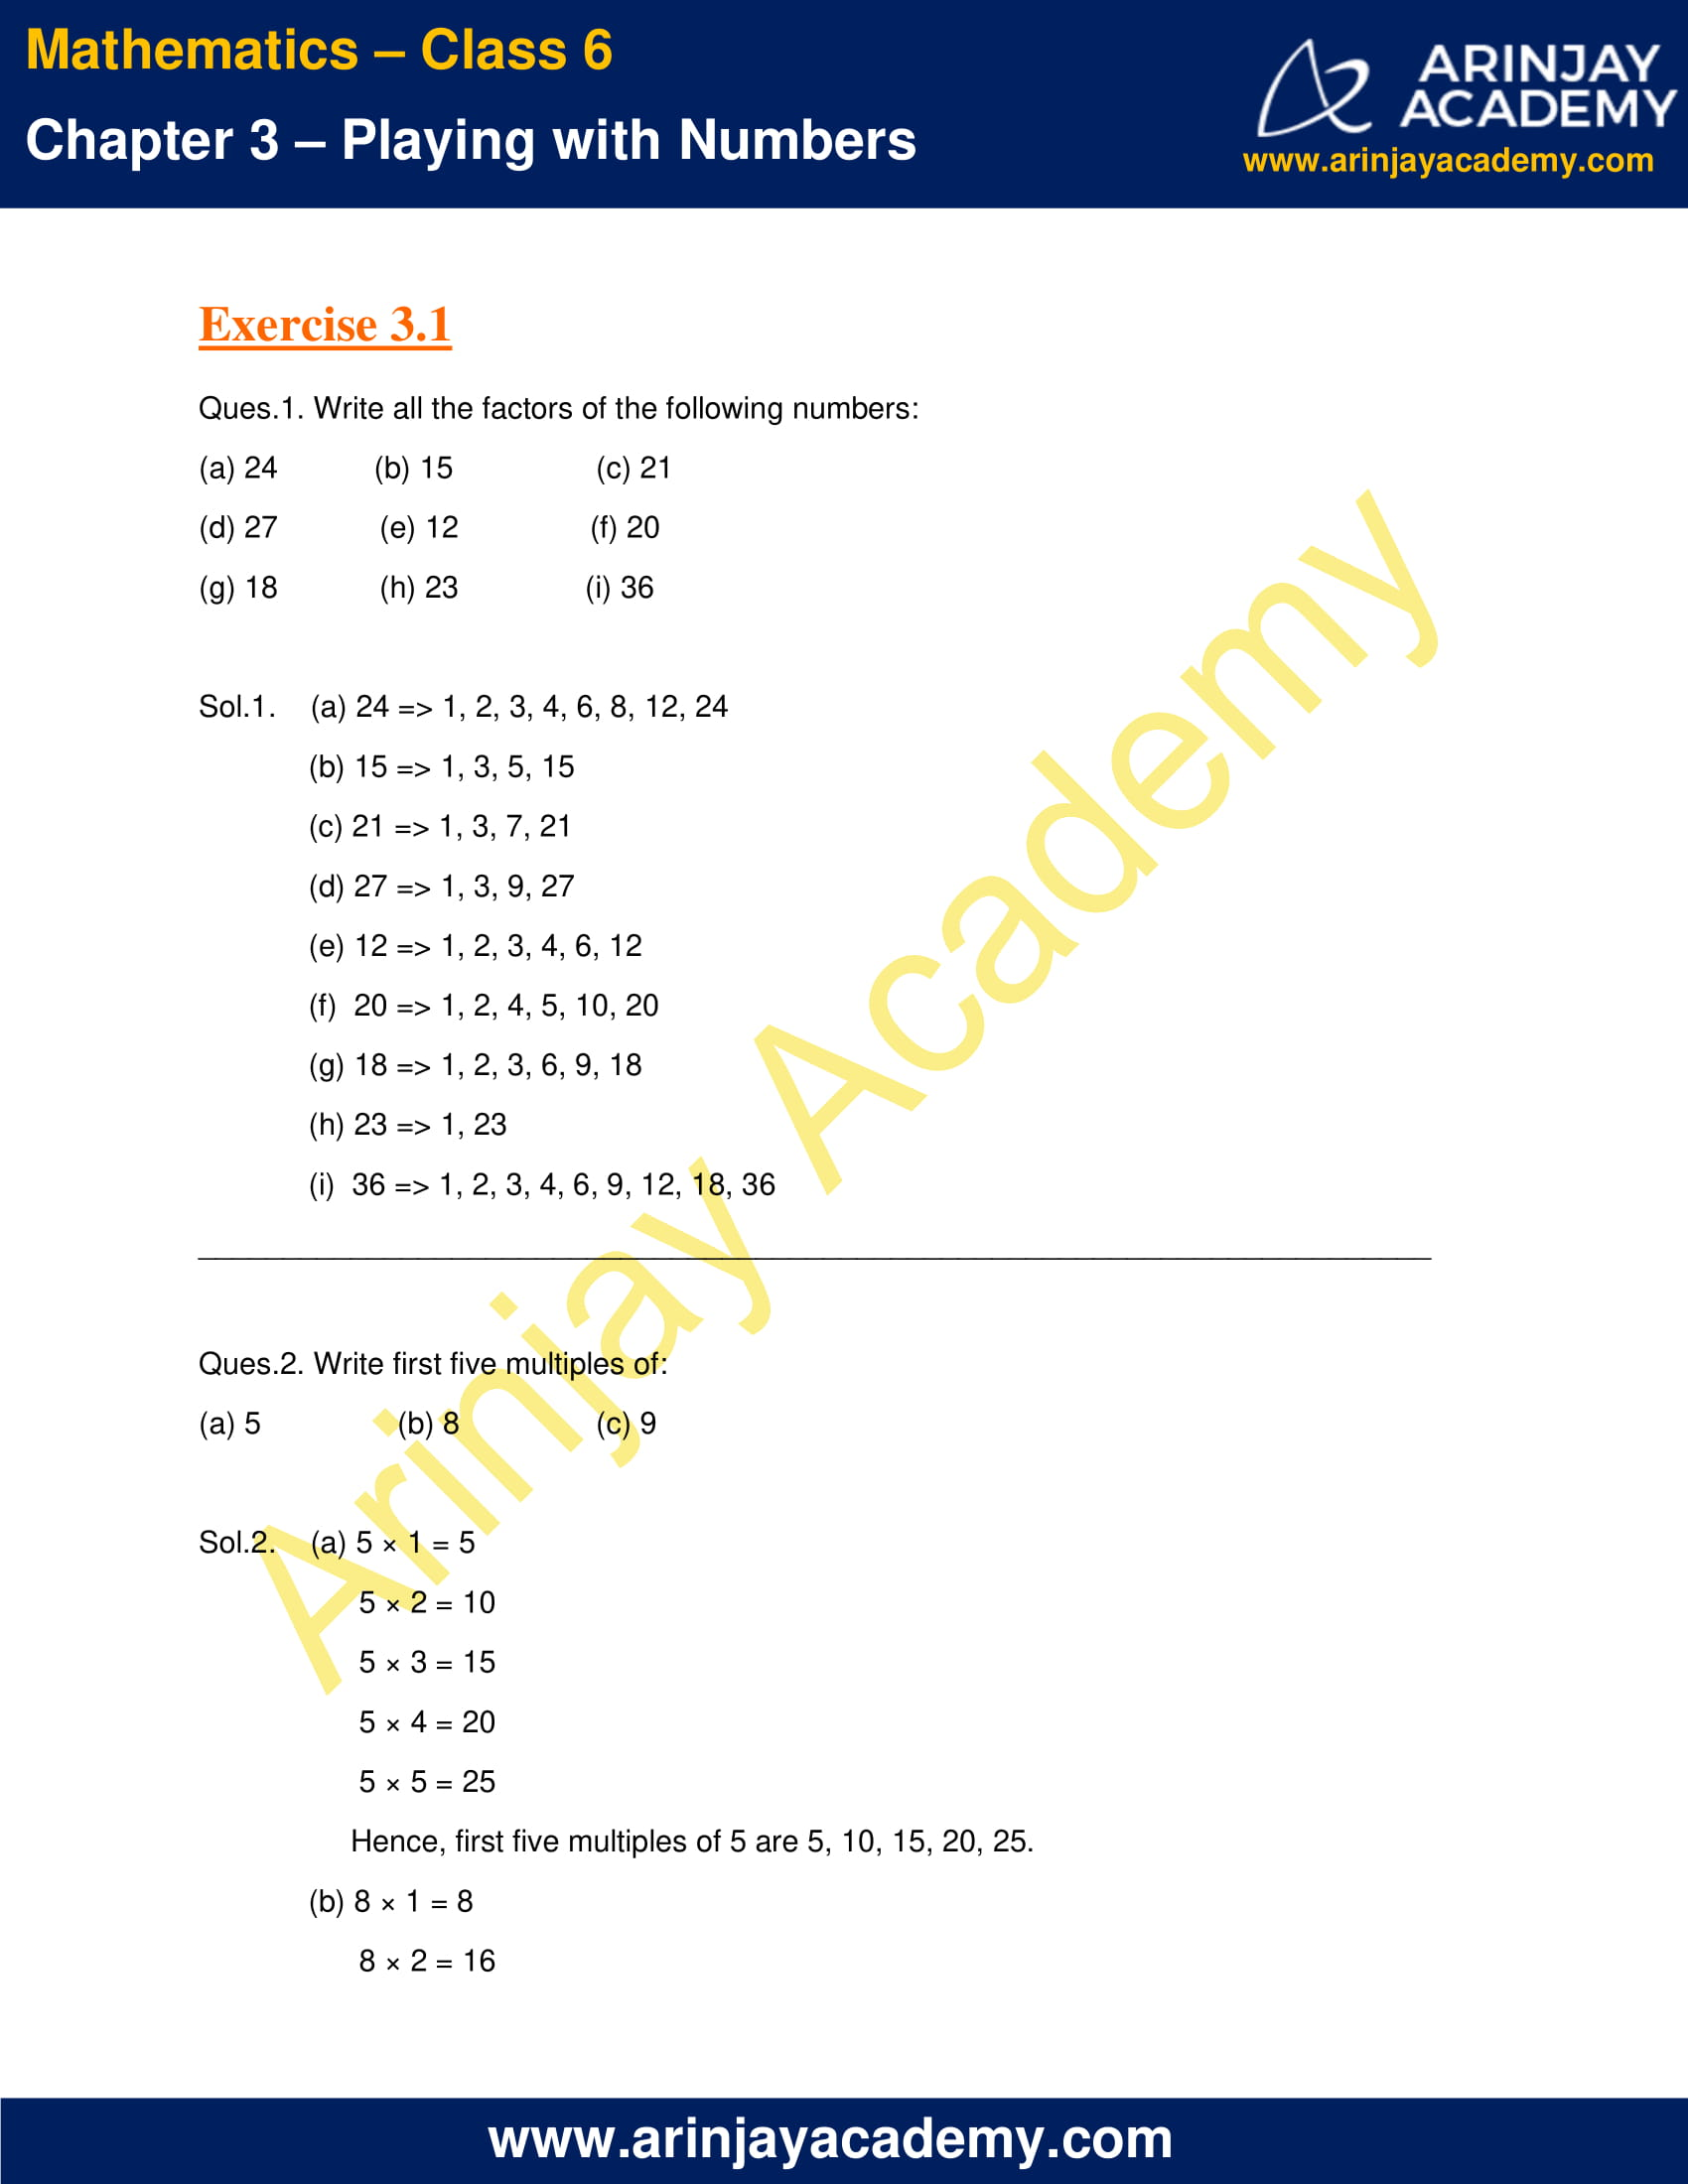 NCERT Solutions for Class 6 Maths Chapter 3 Exercise 3.1 image 1